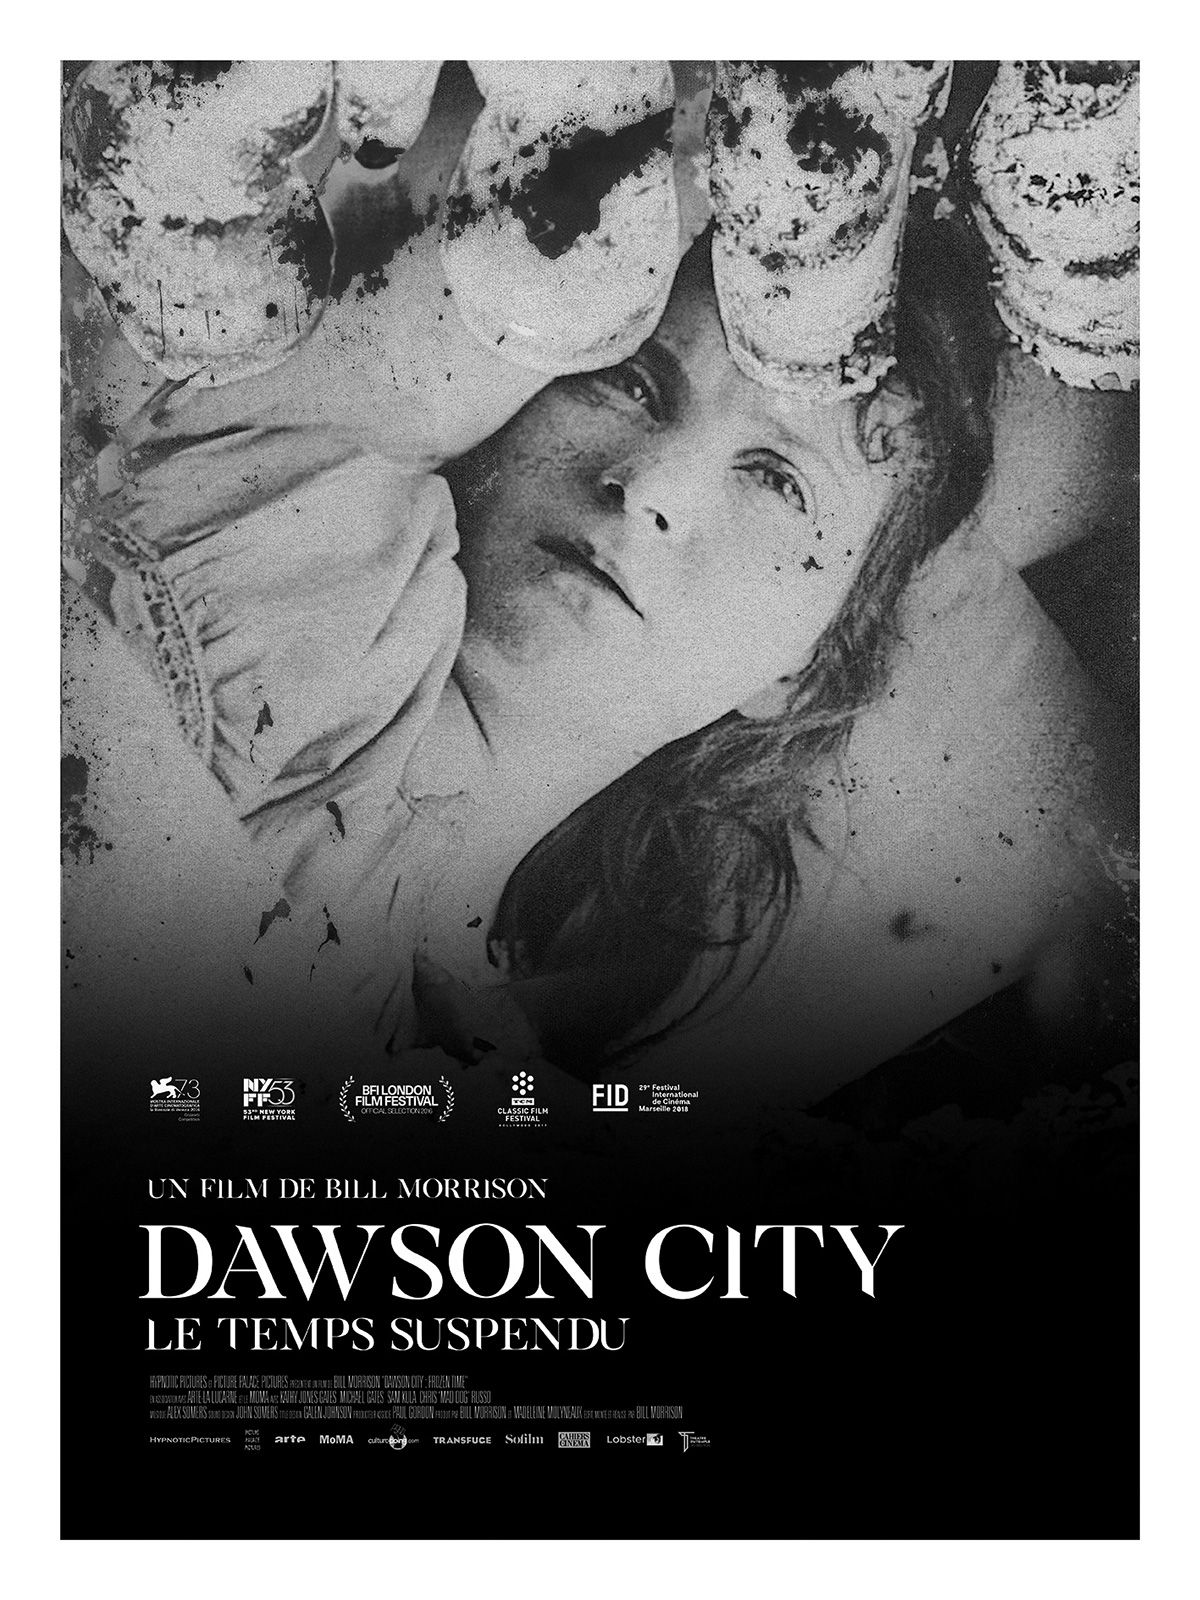 Dawson City : Le Temps suspendu - Documentaire (2016) streaming VF gratuit complet